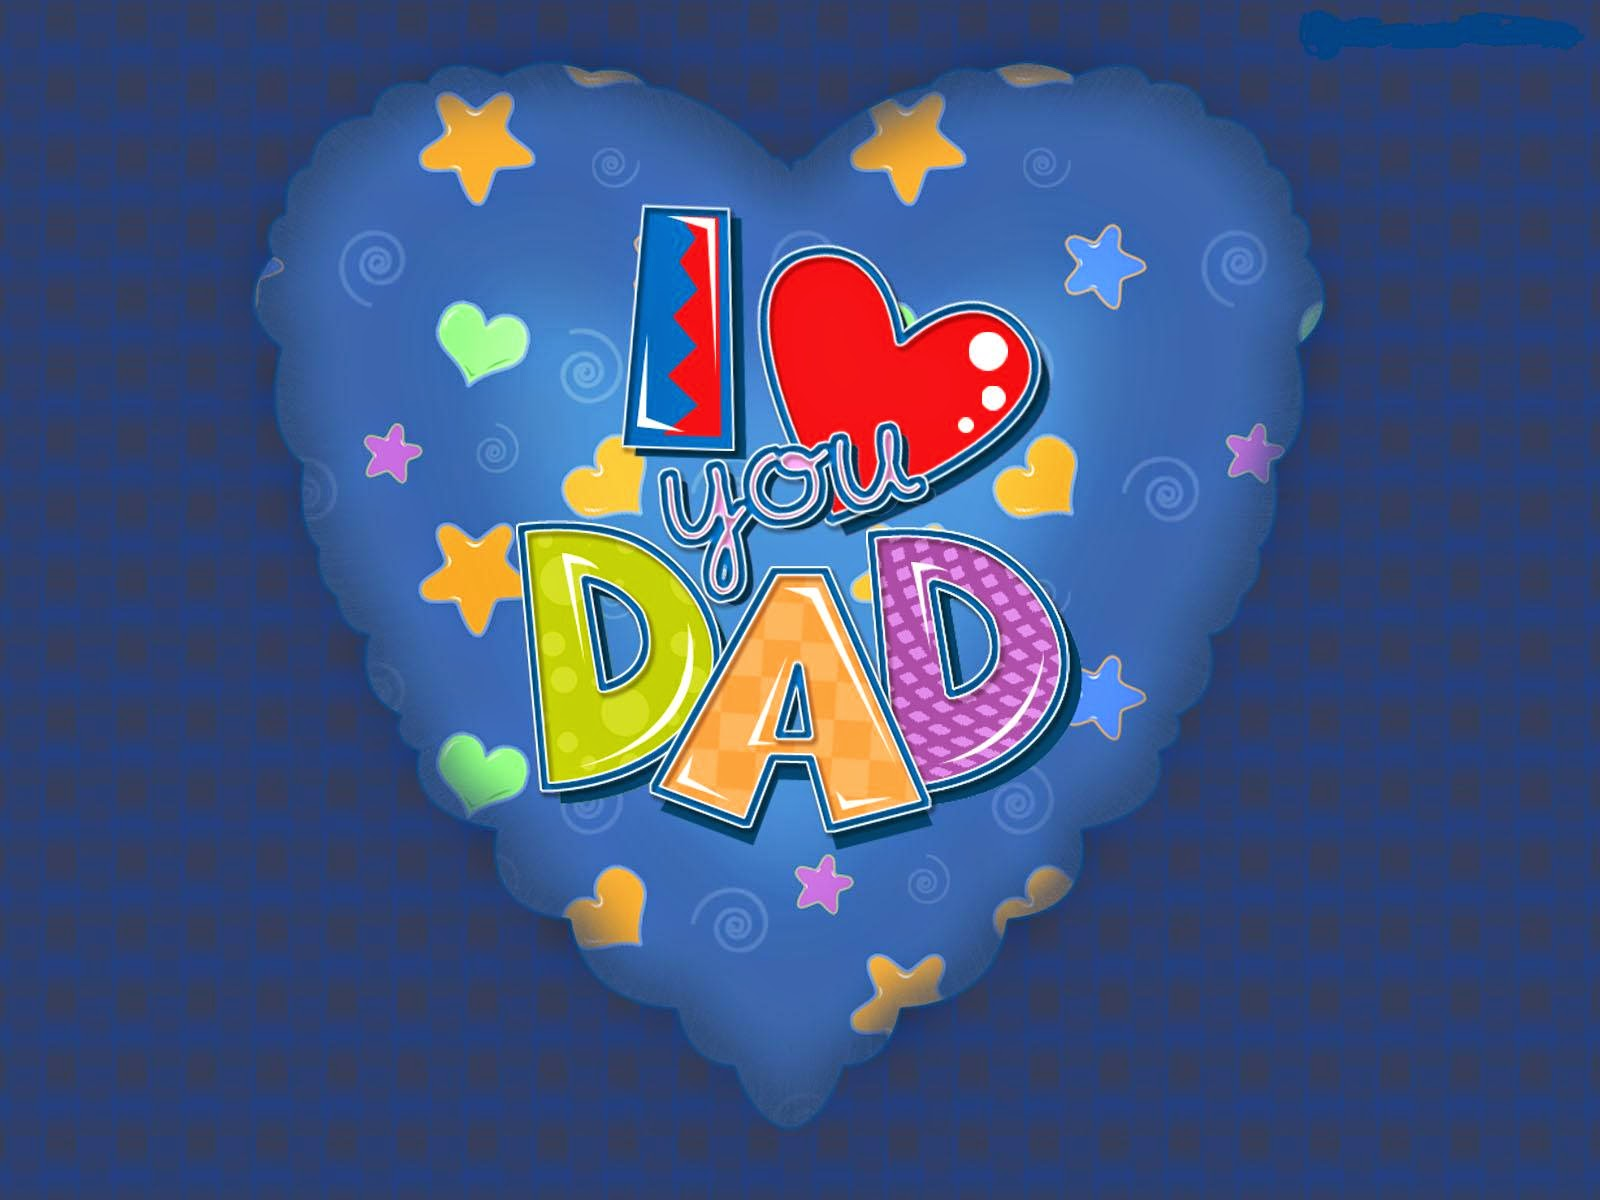 Top Happy Fathers Day Whatsapp Status Messages 2015